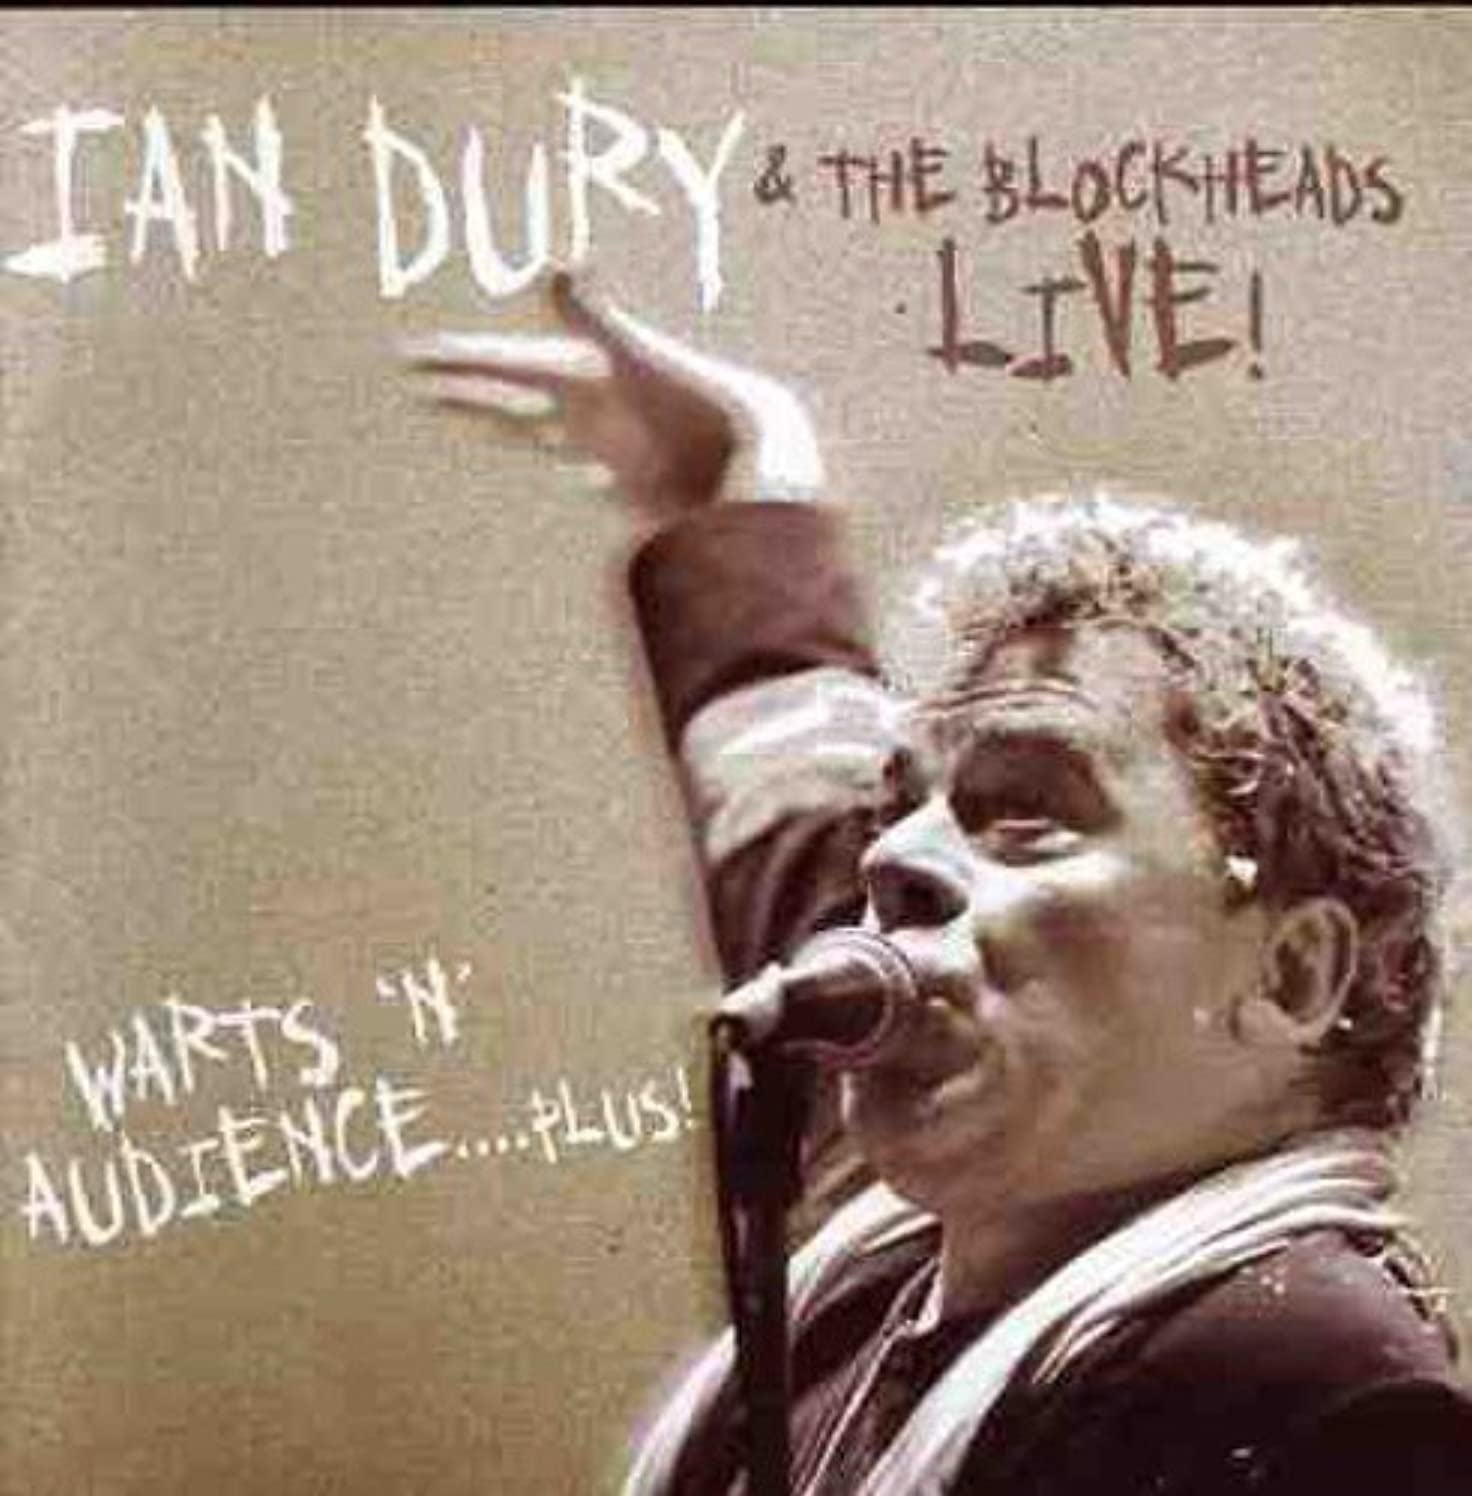 Warts N All - Ian Dury & The Blockheads